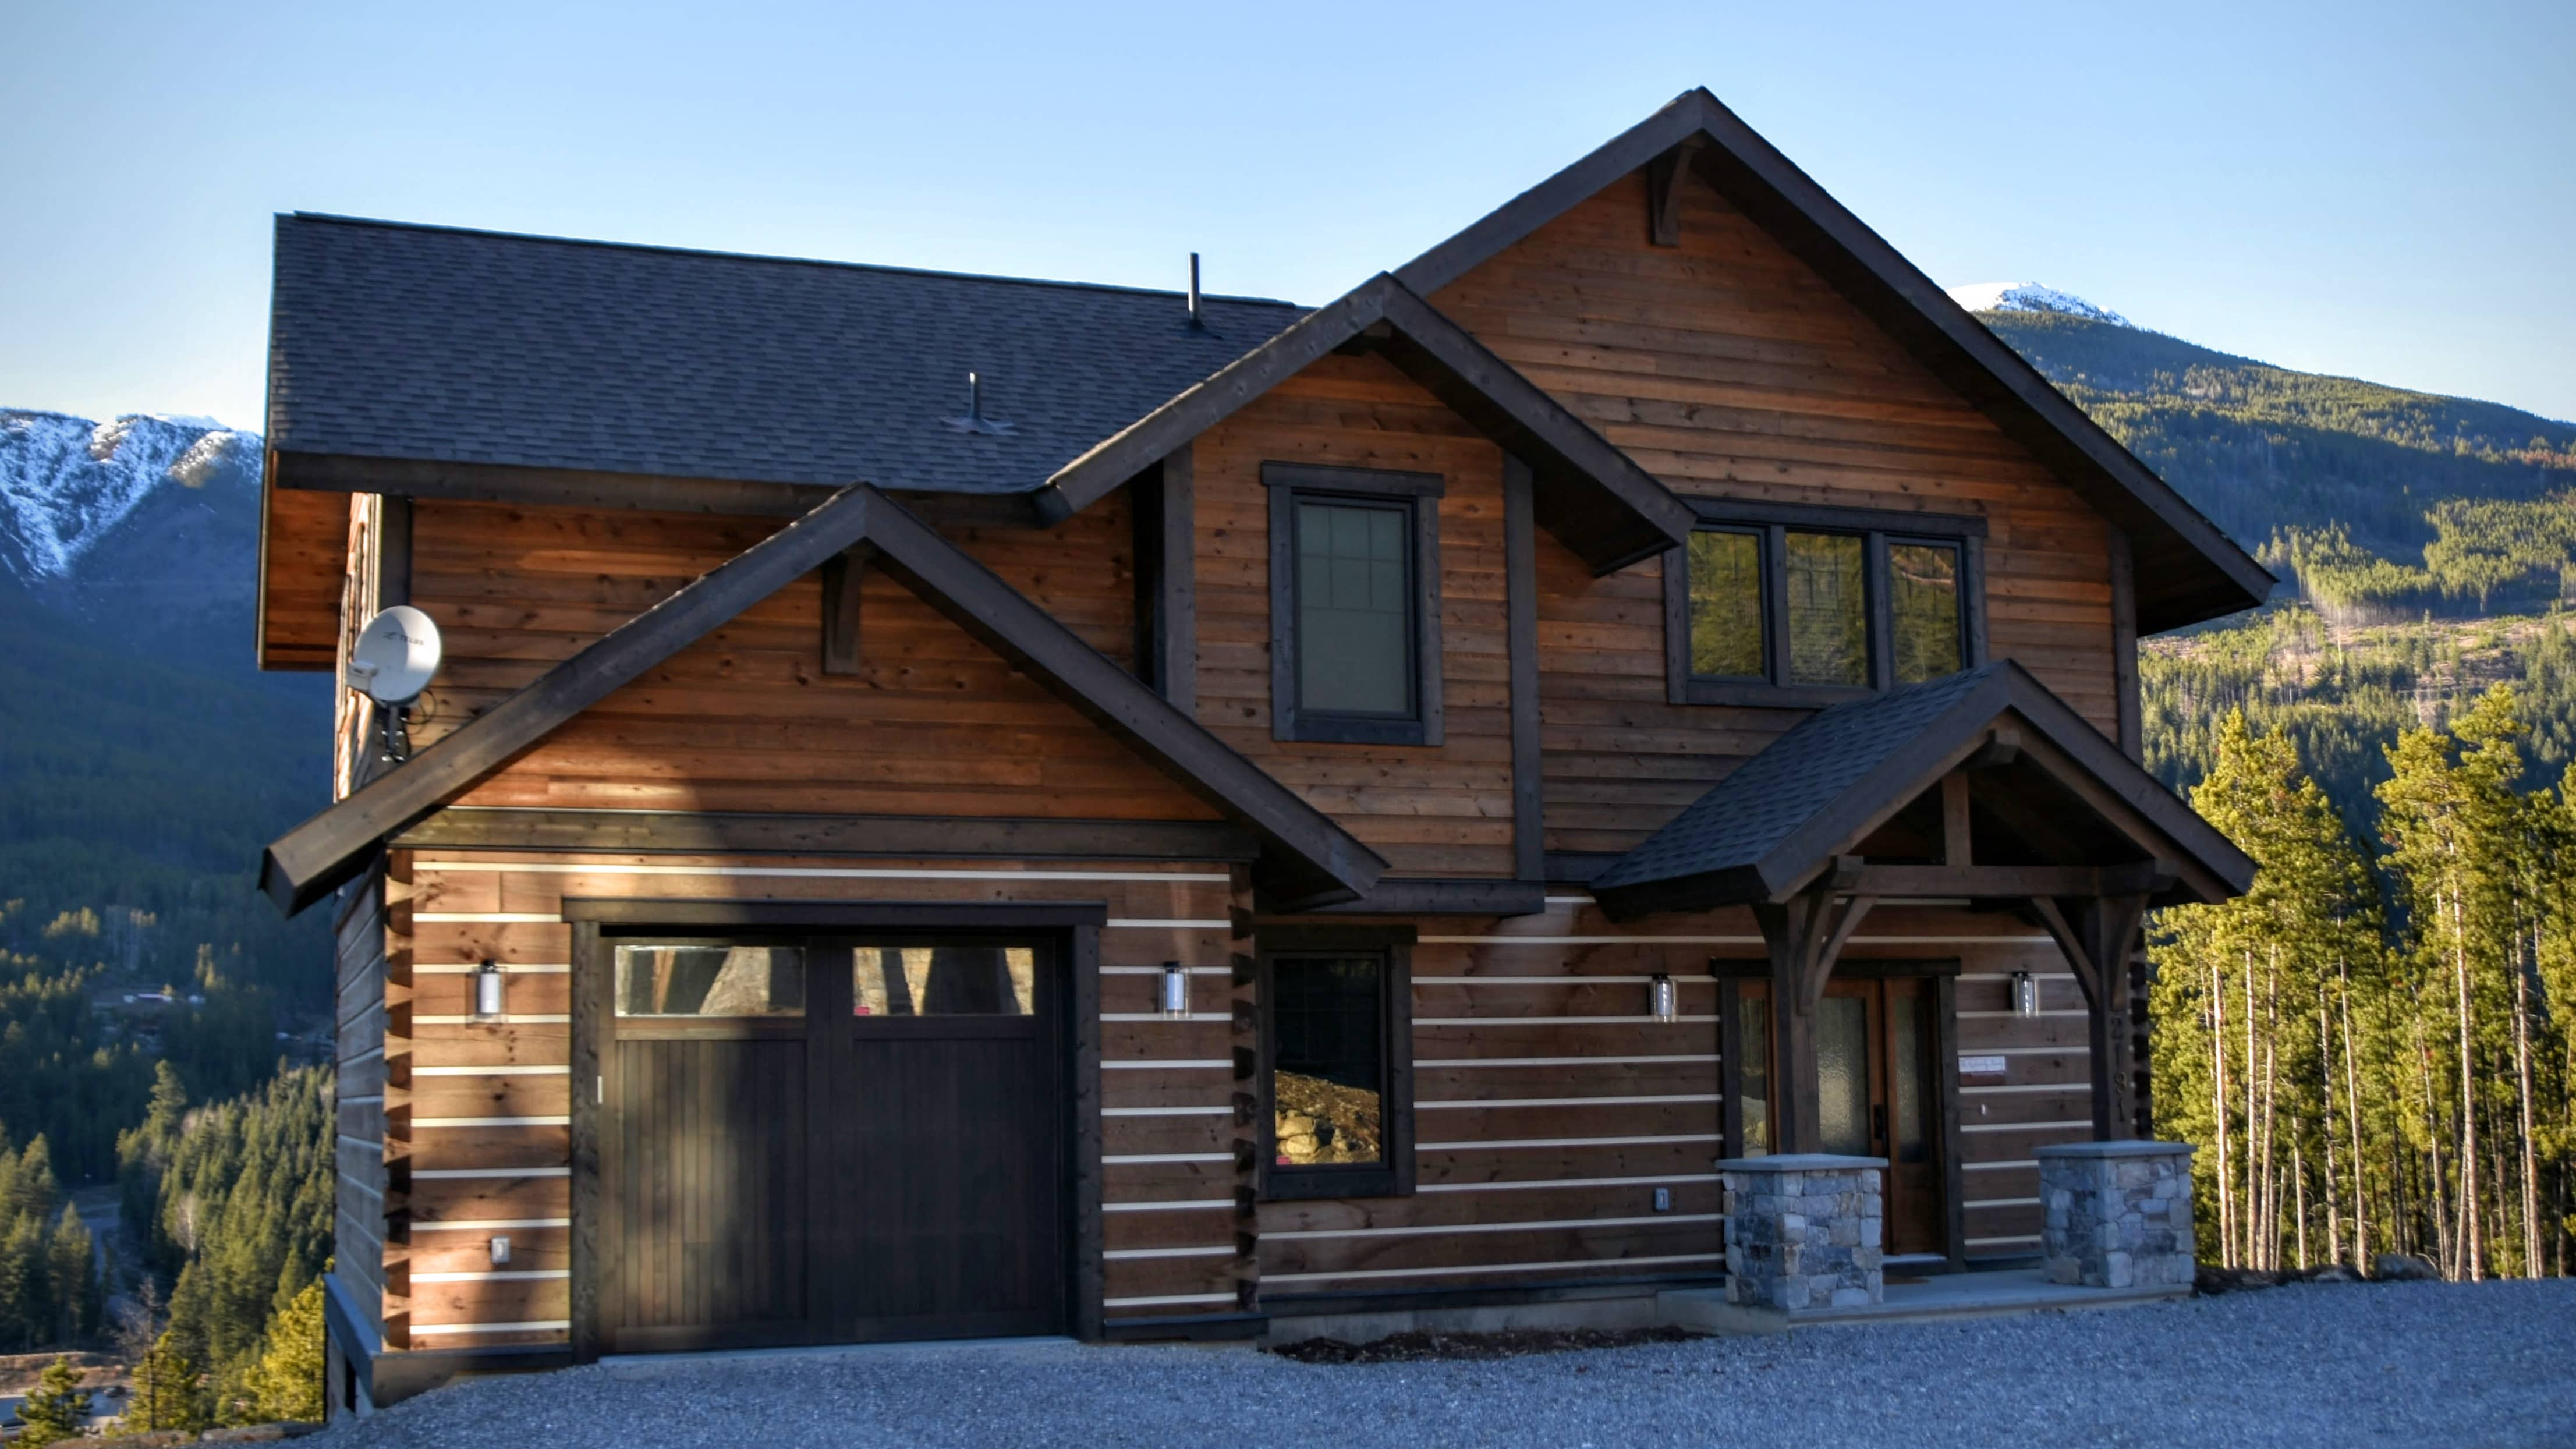 Home building packages - Our Services Start From The Design Model Dovetail Log Homes Or Custom Build Packages Planning Delivery And To Install Logs Only Or Lock Up Stage